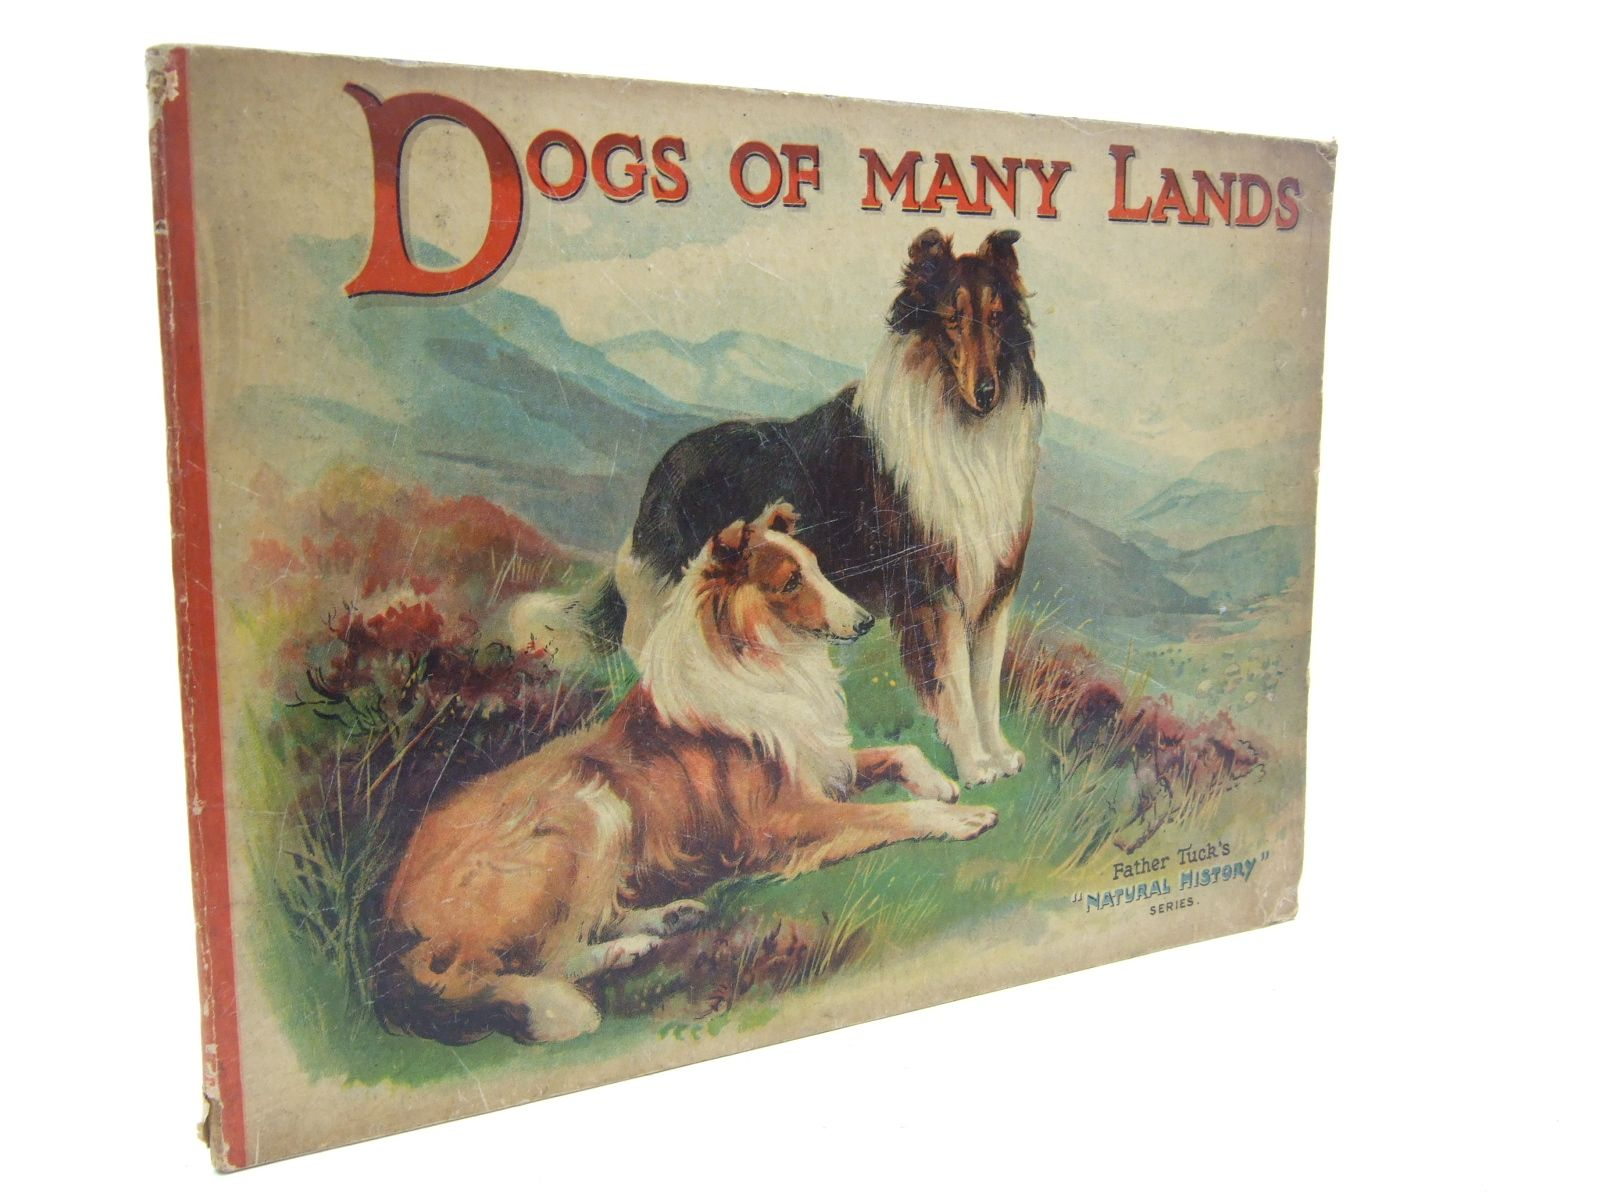 Photo of DOGS OF MANY LANDS published by Raphael Tuck & Sons Ltd. (STOCK CODE: 1707584)  for sale by Stella & Rose's Books